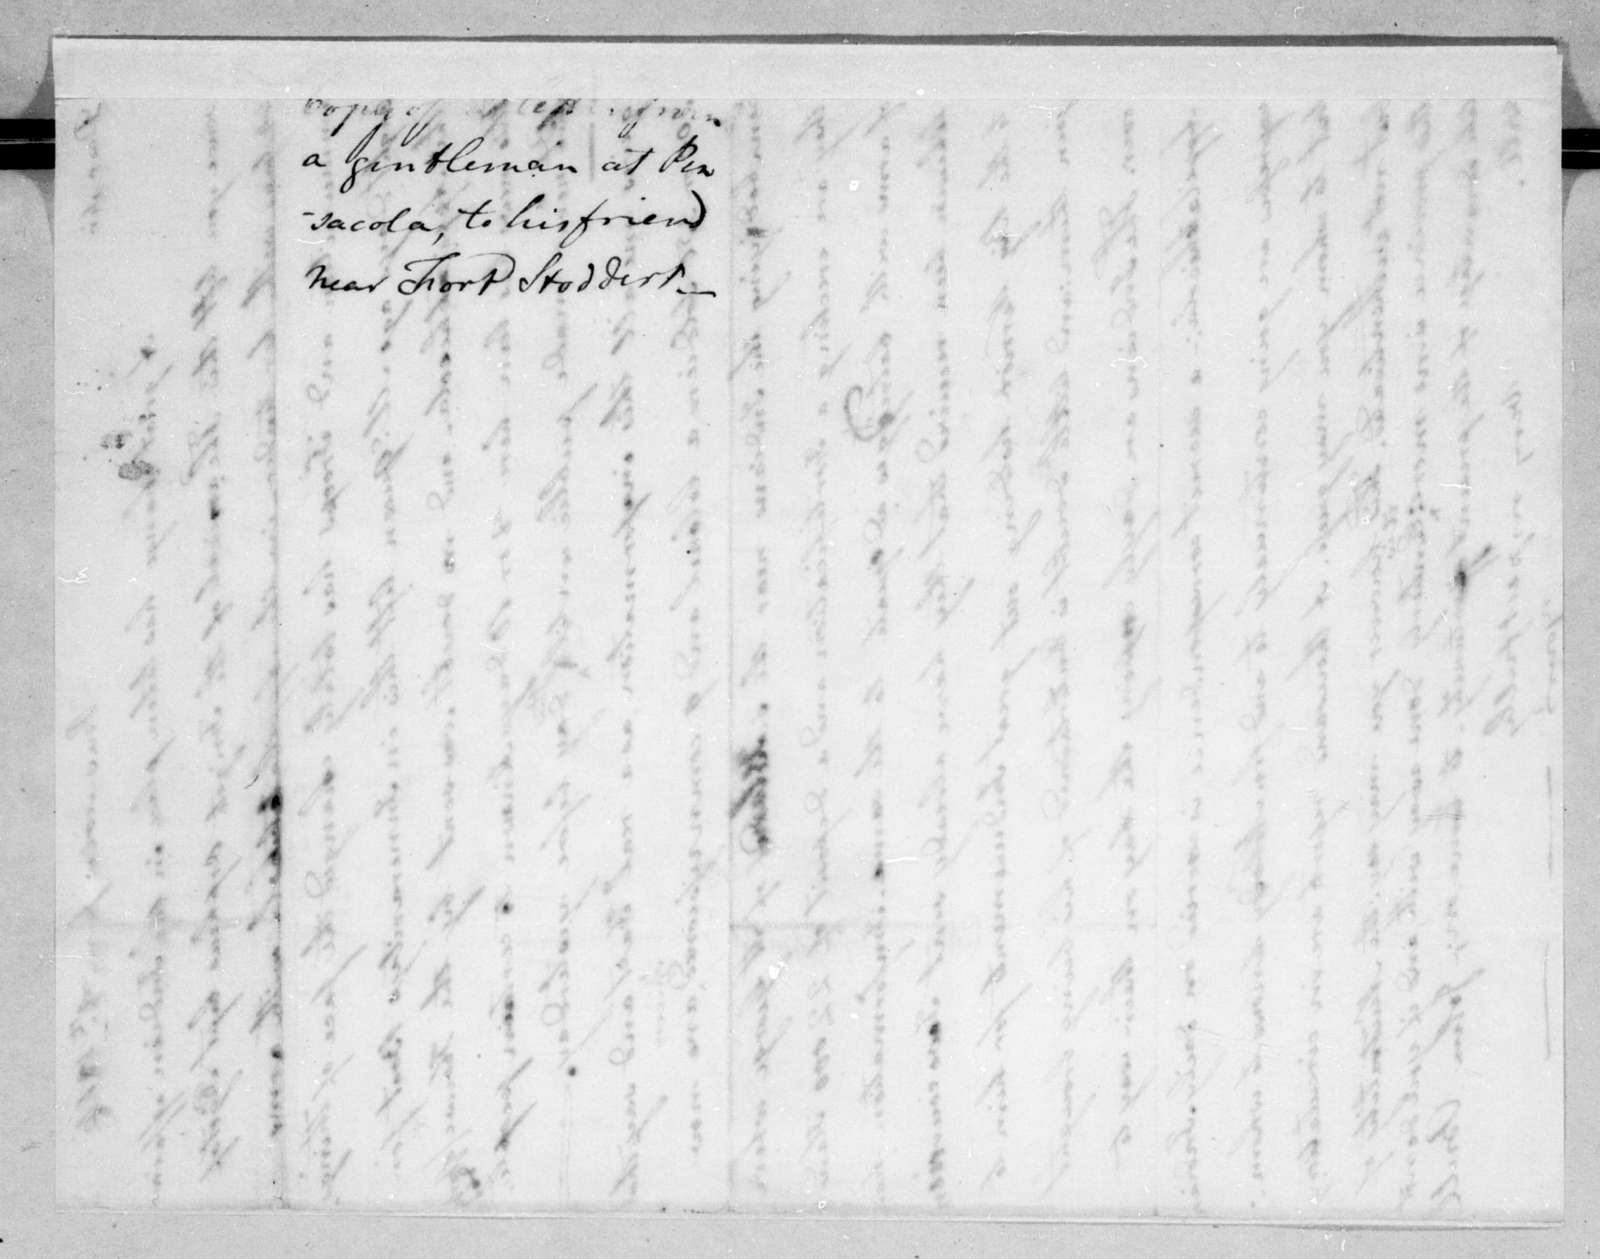 Unknown to Unknown, June 8, 1816